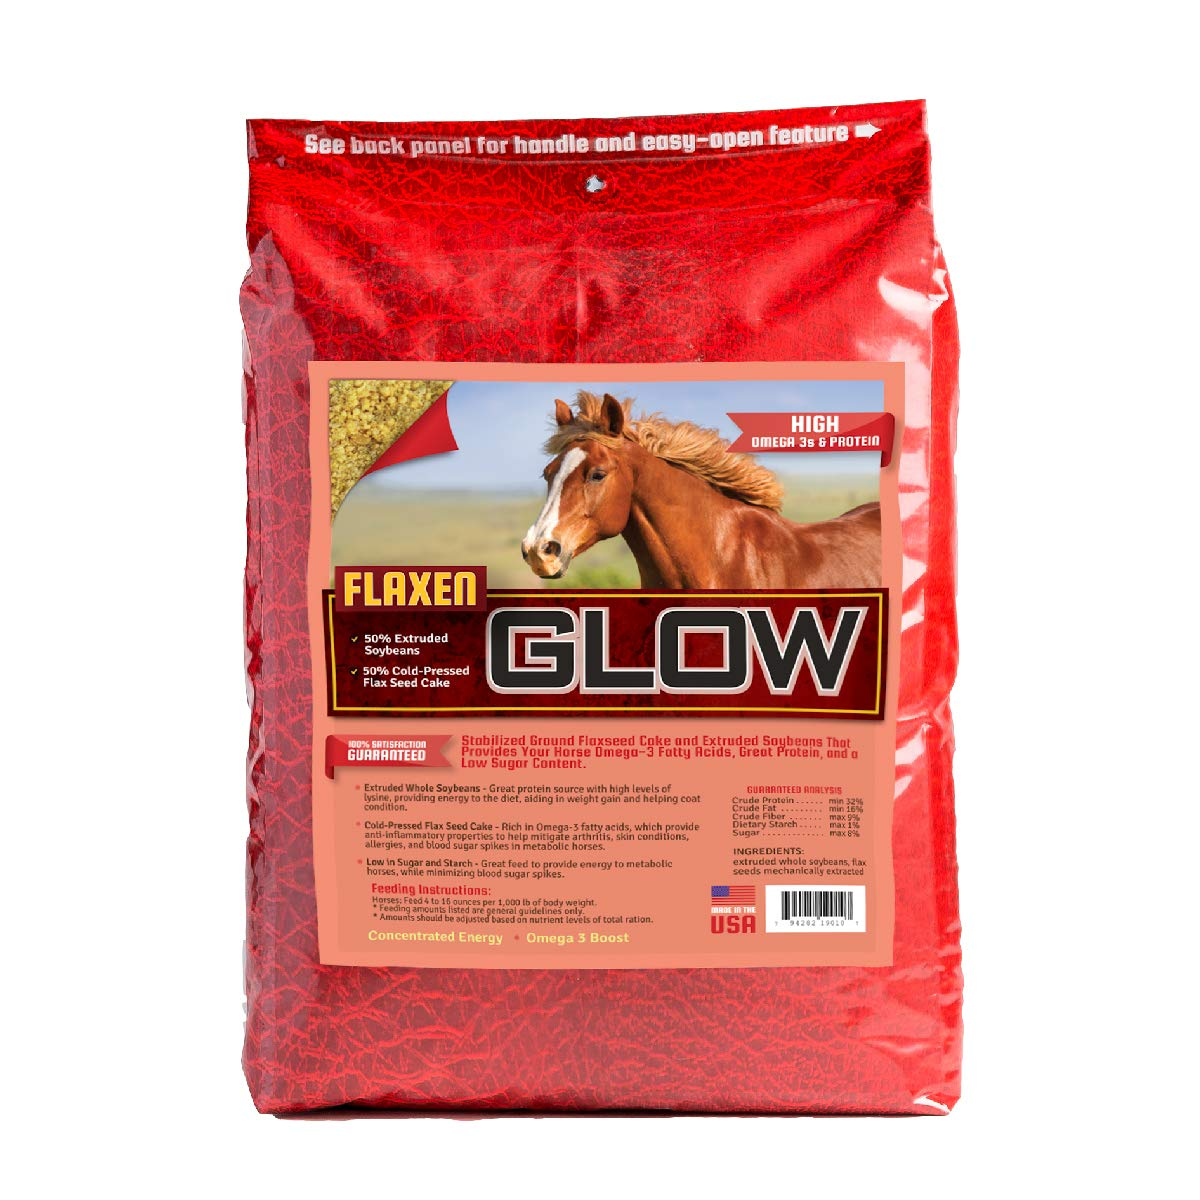 Glow Extruded Soybeans High-Fat Supplement 40 lbs Bag